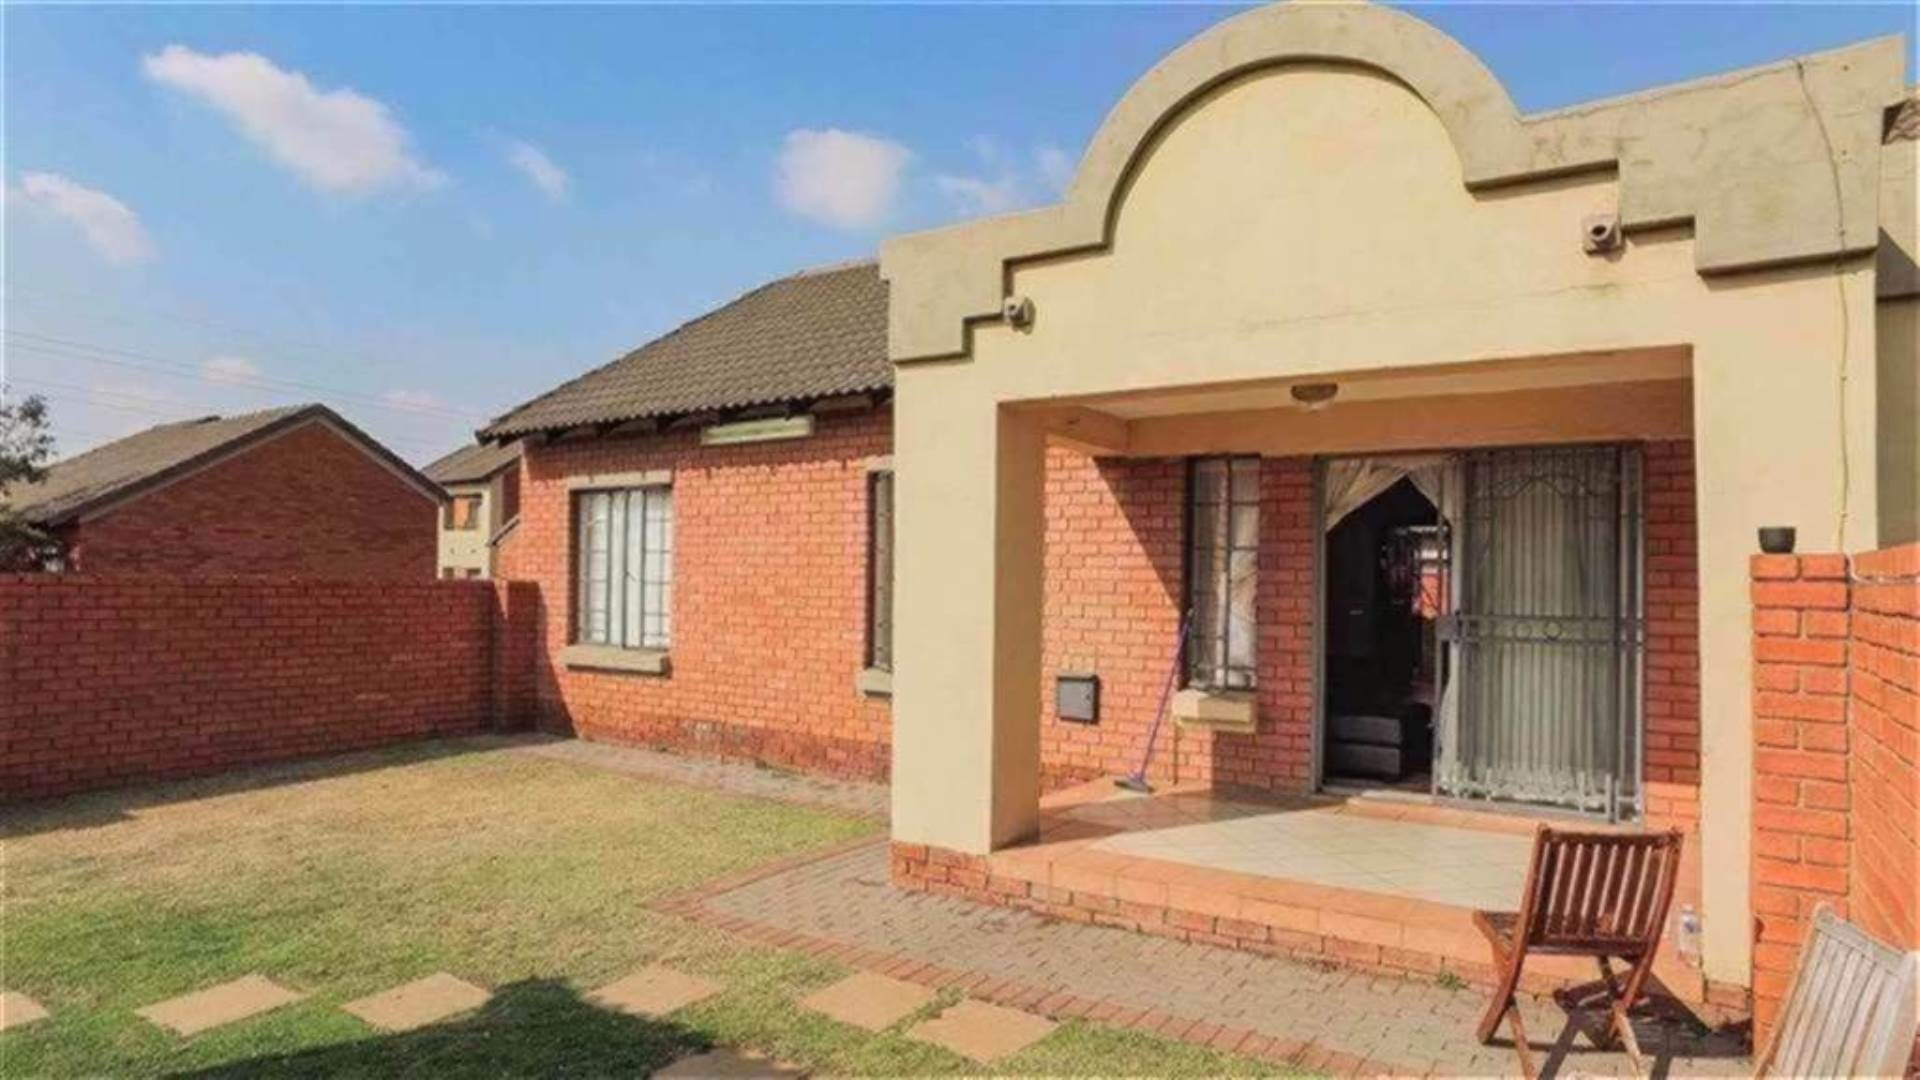 Centurion, Centurion Central Property  | Houses For Sale Centurion Central, CENTURION CENTRAL, Townhouse 3 bedrooms property for sale Price:1,285,000